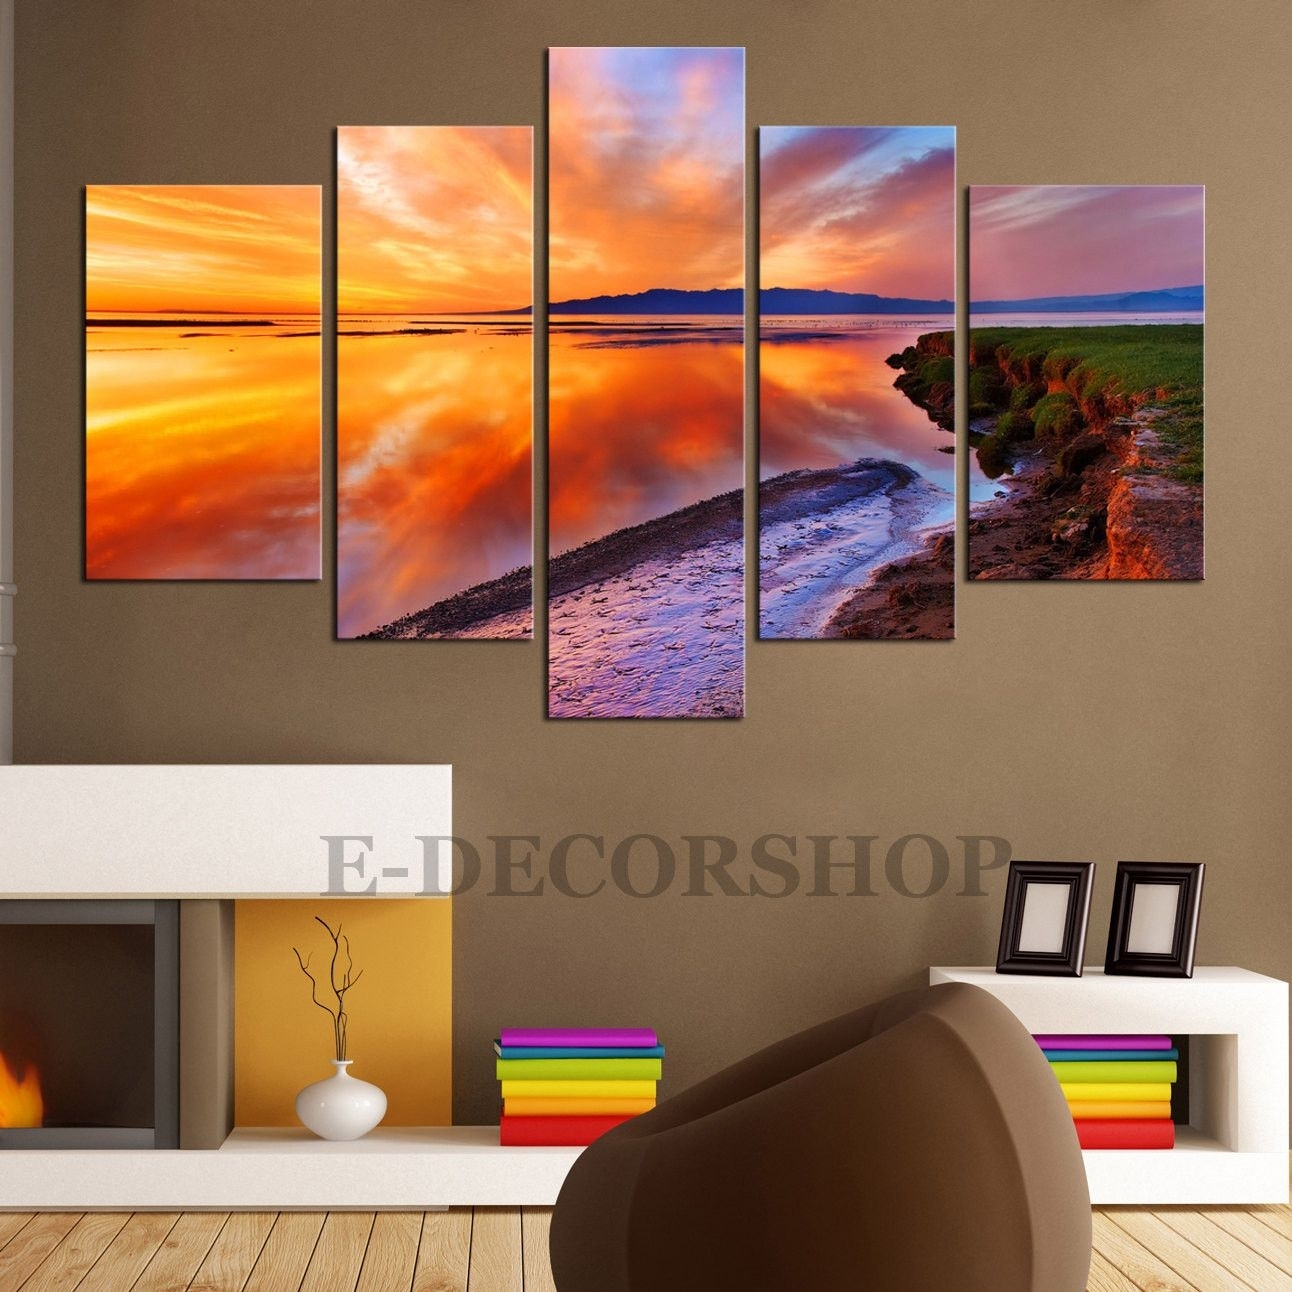 Large Canvas Wall Art – Sunset 5 Piece Canvas Art Print For Home With 2017 Large Canvas Wall Art (Gallery 9 of 15)